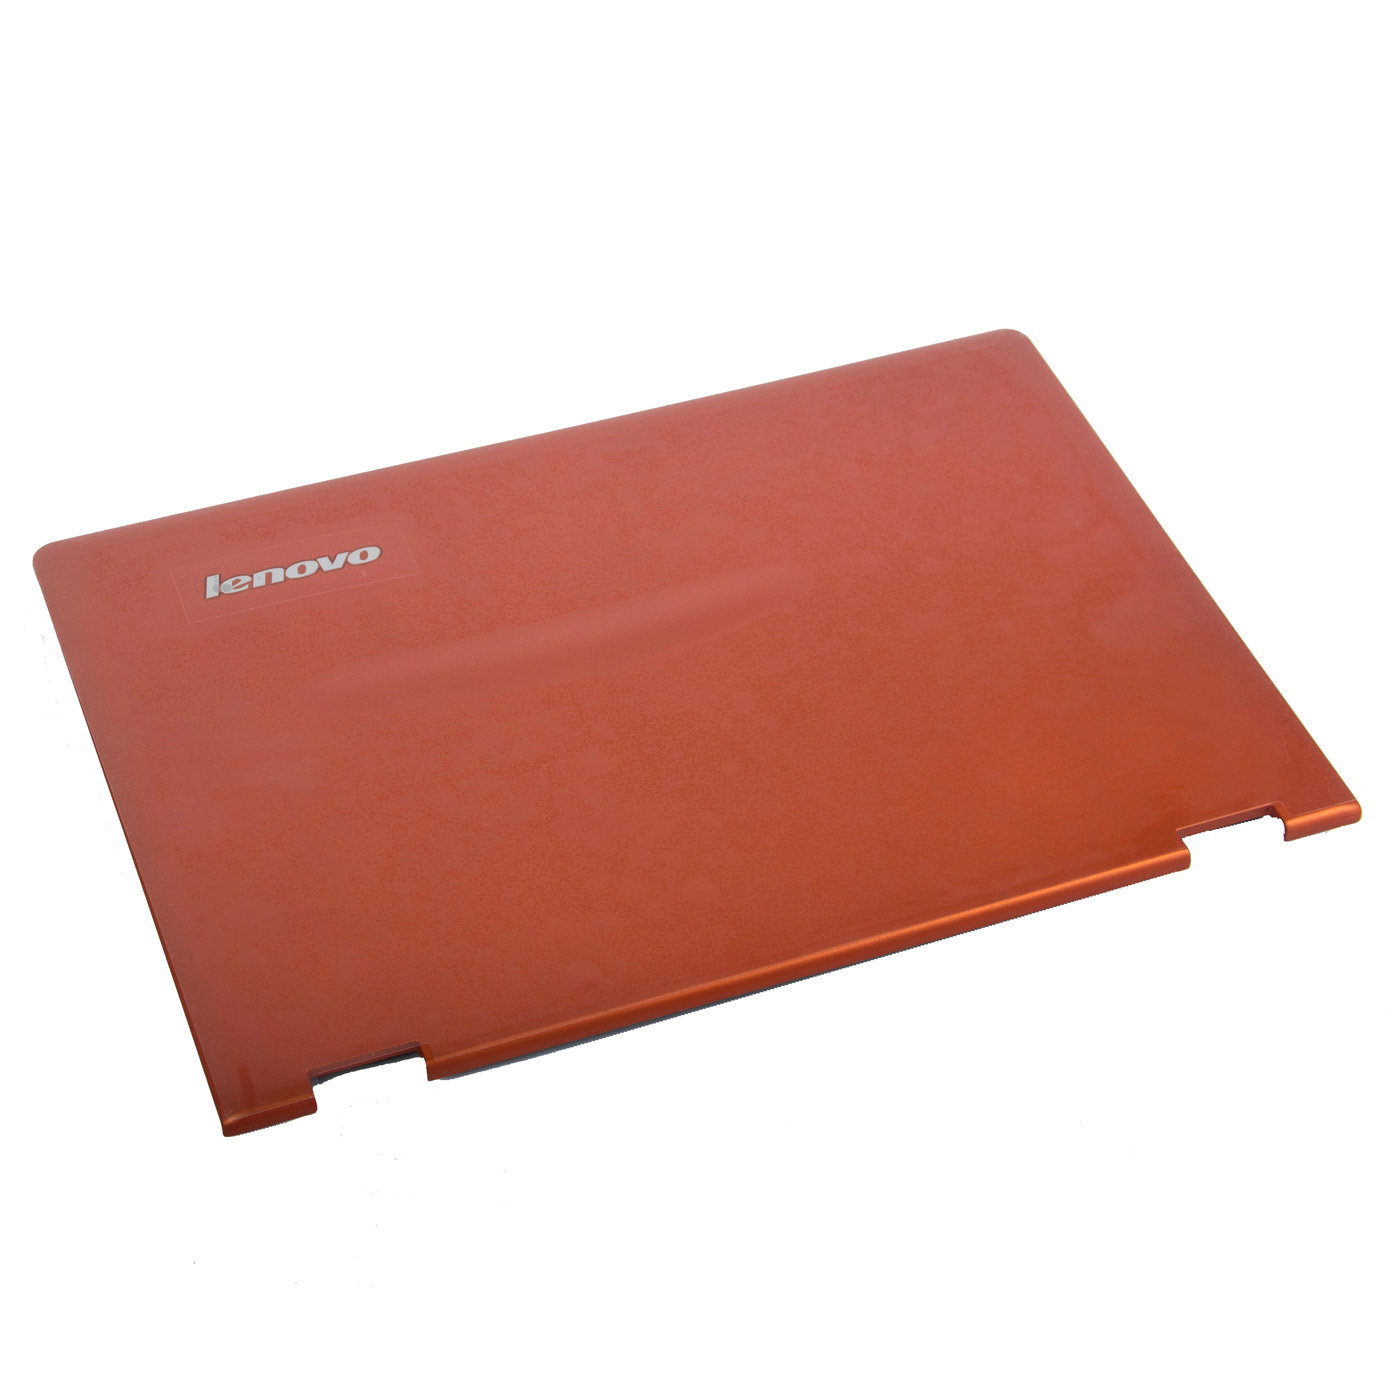 Obudowa matrycy Lenovo IdeaPad Yoga 13 11S30500244 orange